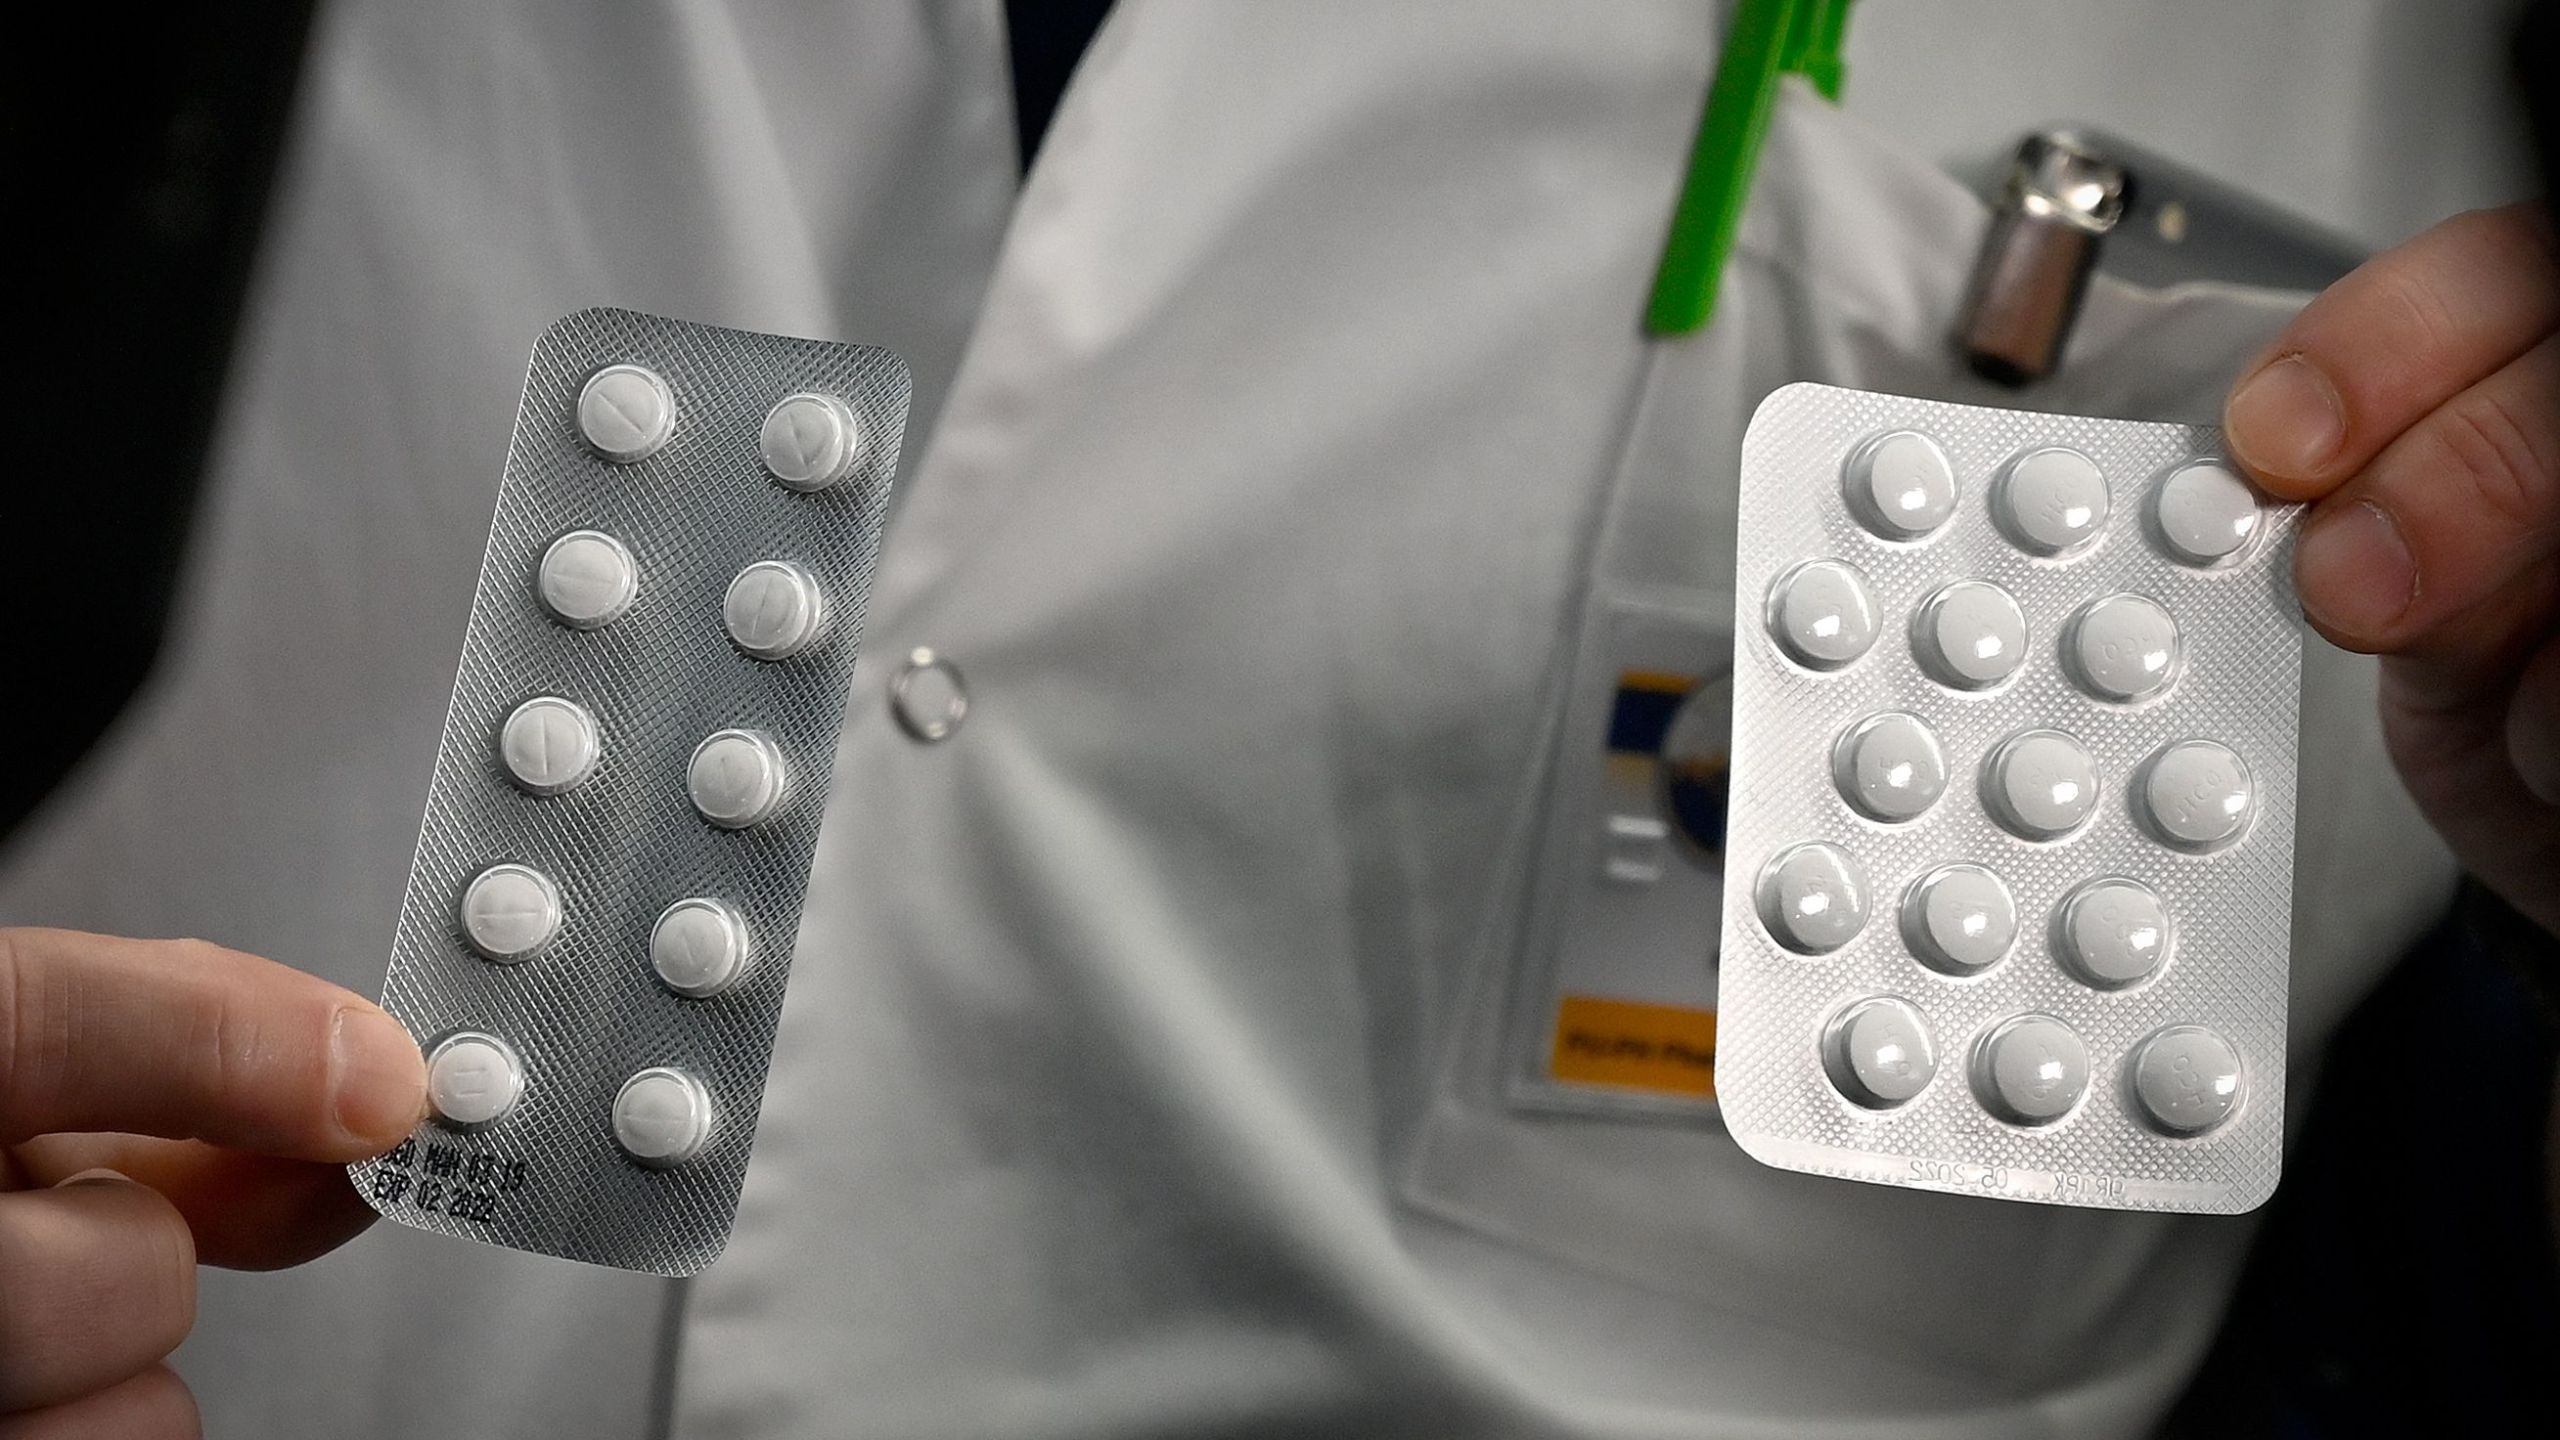 Medical staff shows on February 26, 2020 at the IHU Mediterranee Infection Institute in Marseille, packets of a Nivaquine, tablets containing chloroquine and Plaqueril, tablets containing hydroxychloroquine, drugs that has shown signs of effectiveness against coronavirus. (GERARD JULIEN/AFP via Getty Images)